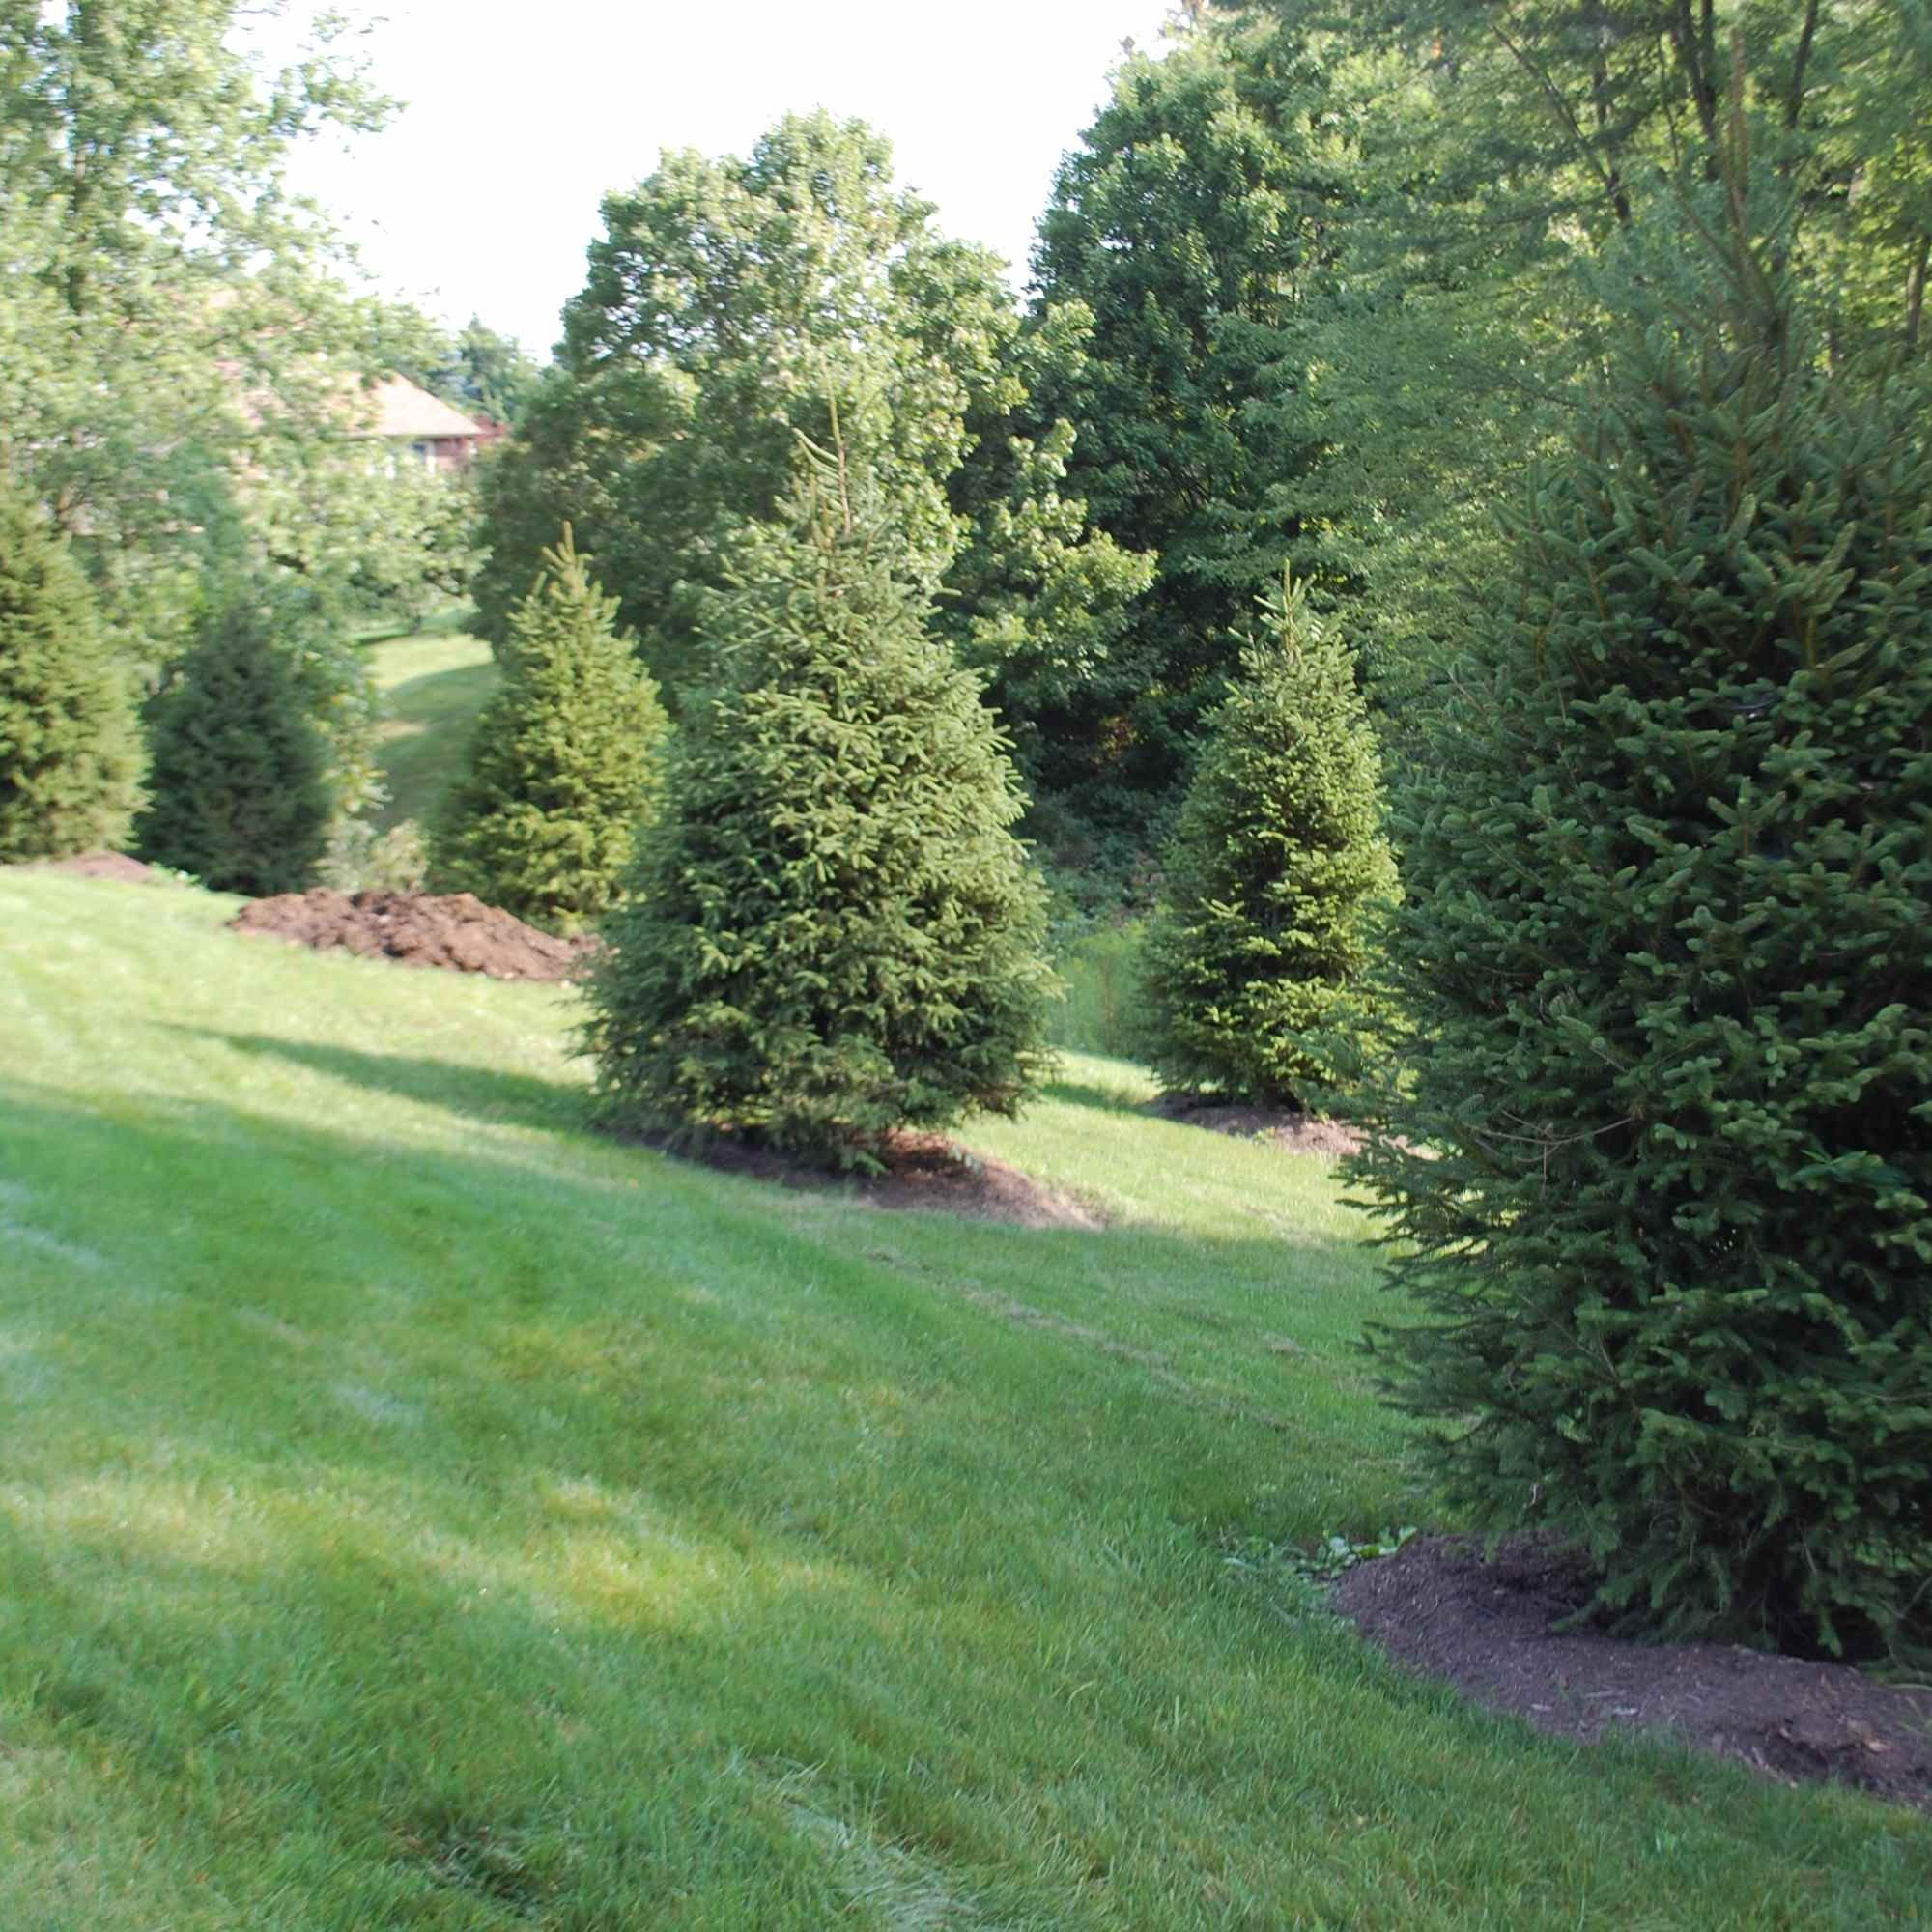 Landscaped Trees and Grass